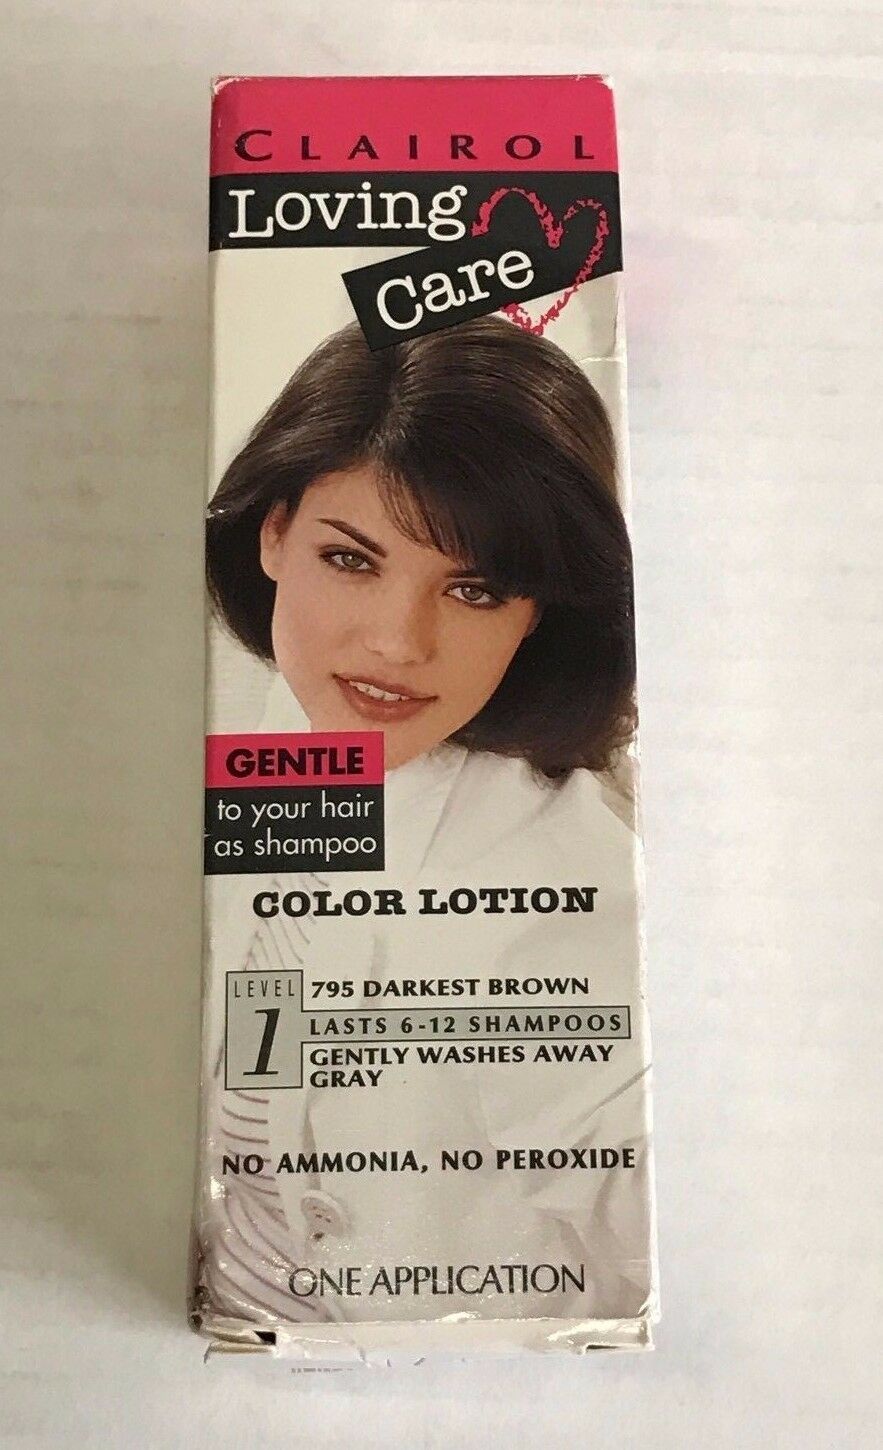 Clairol Loving Care Color Lotion 795 Darkest Brown